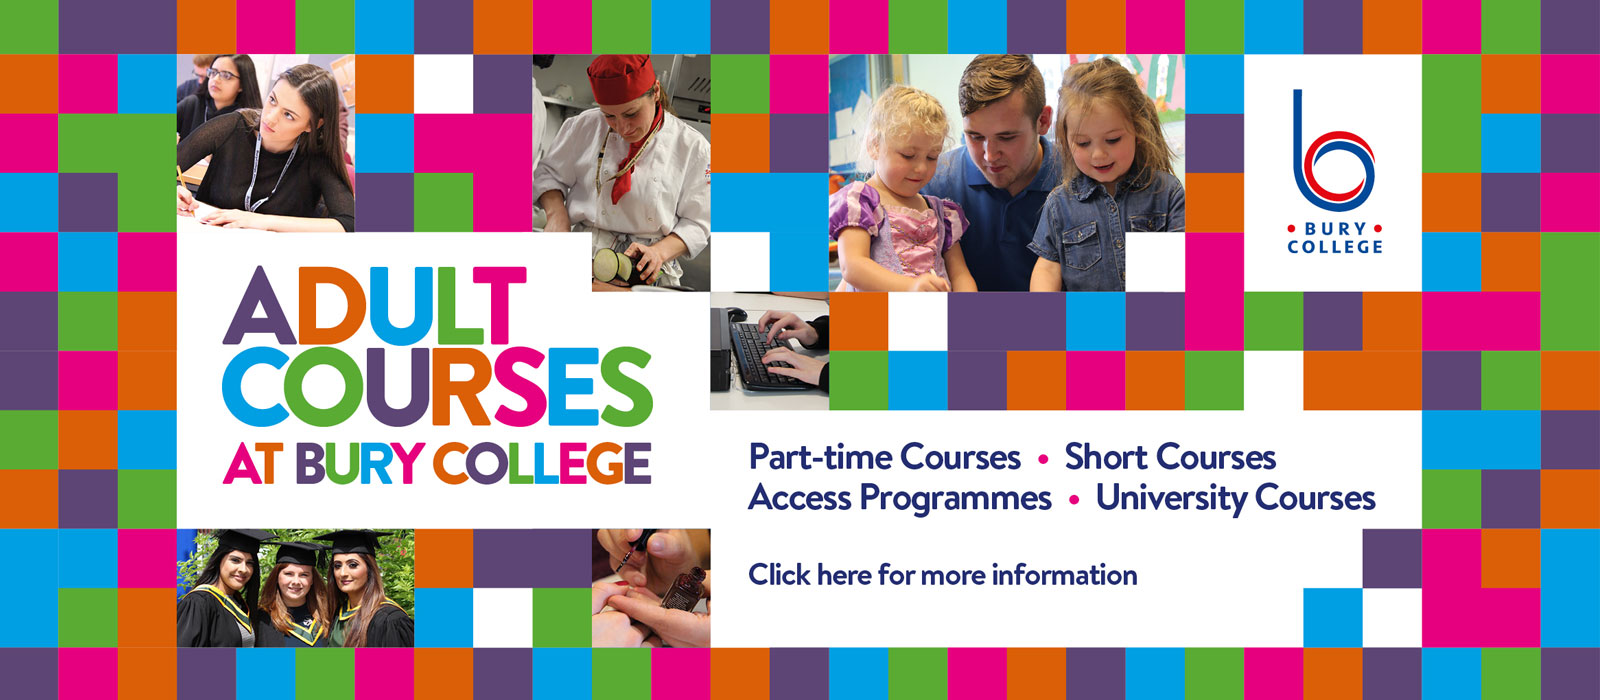 Part-time and short courses guide 2017-18 - Click here to download